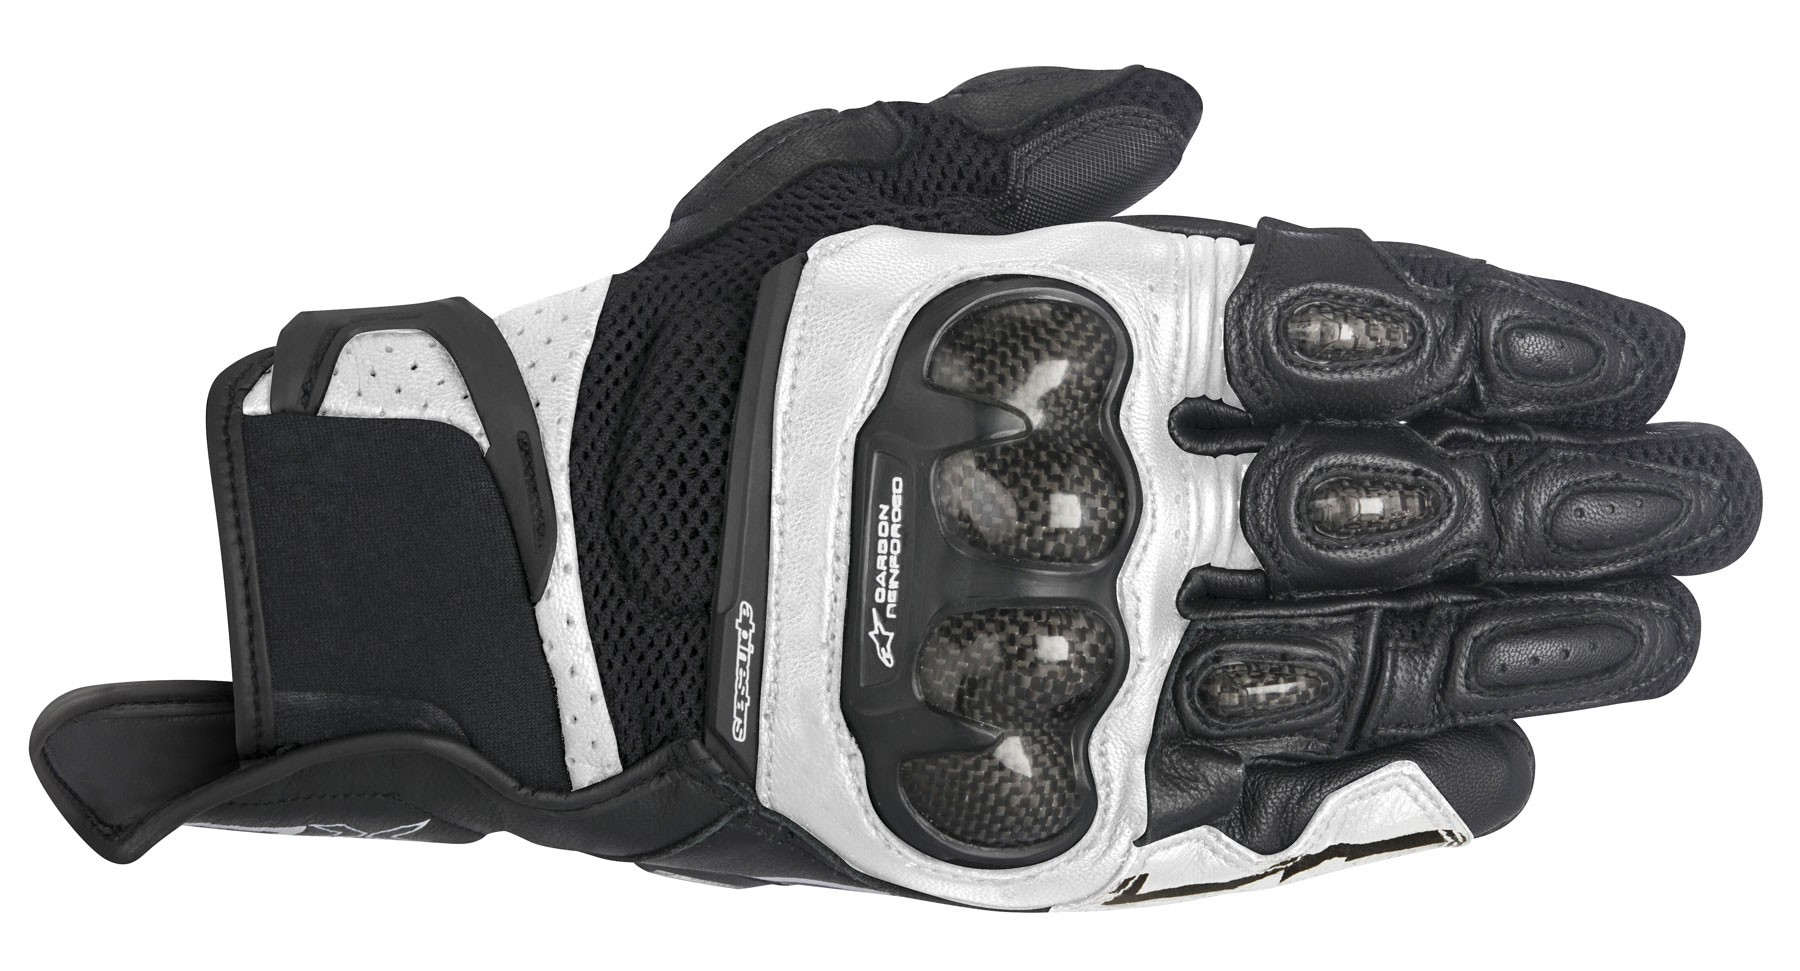 Alpinestars 2016 Stella Spx Air Carbon Leather Mesh Motorcycle Gloves Riding Black White